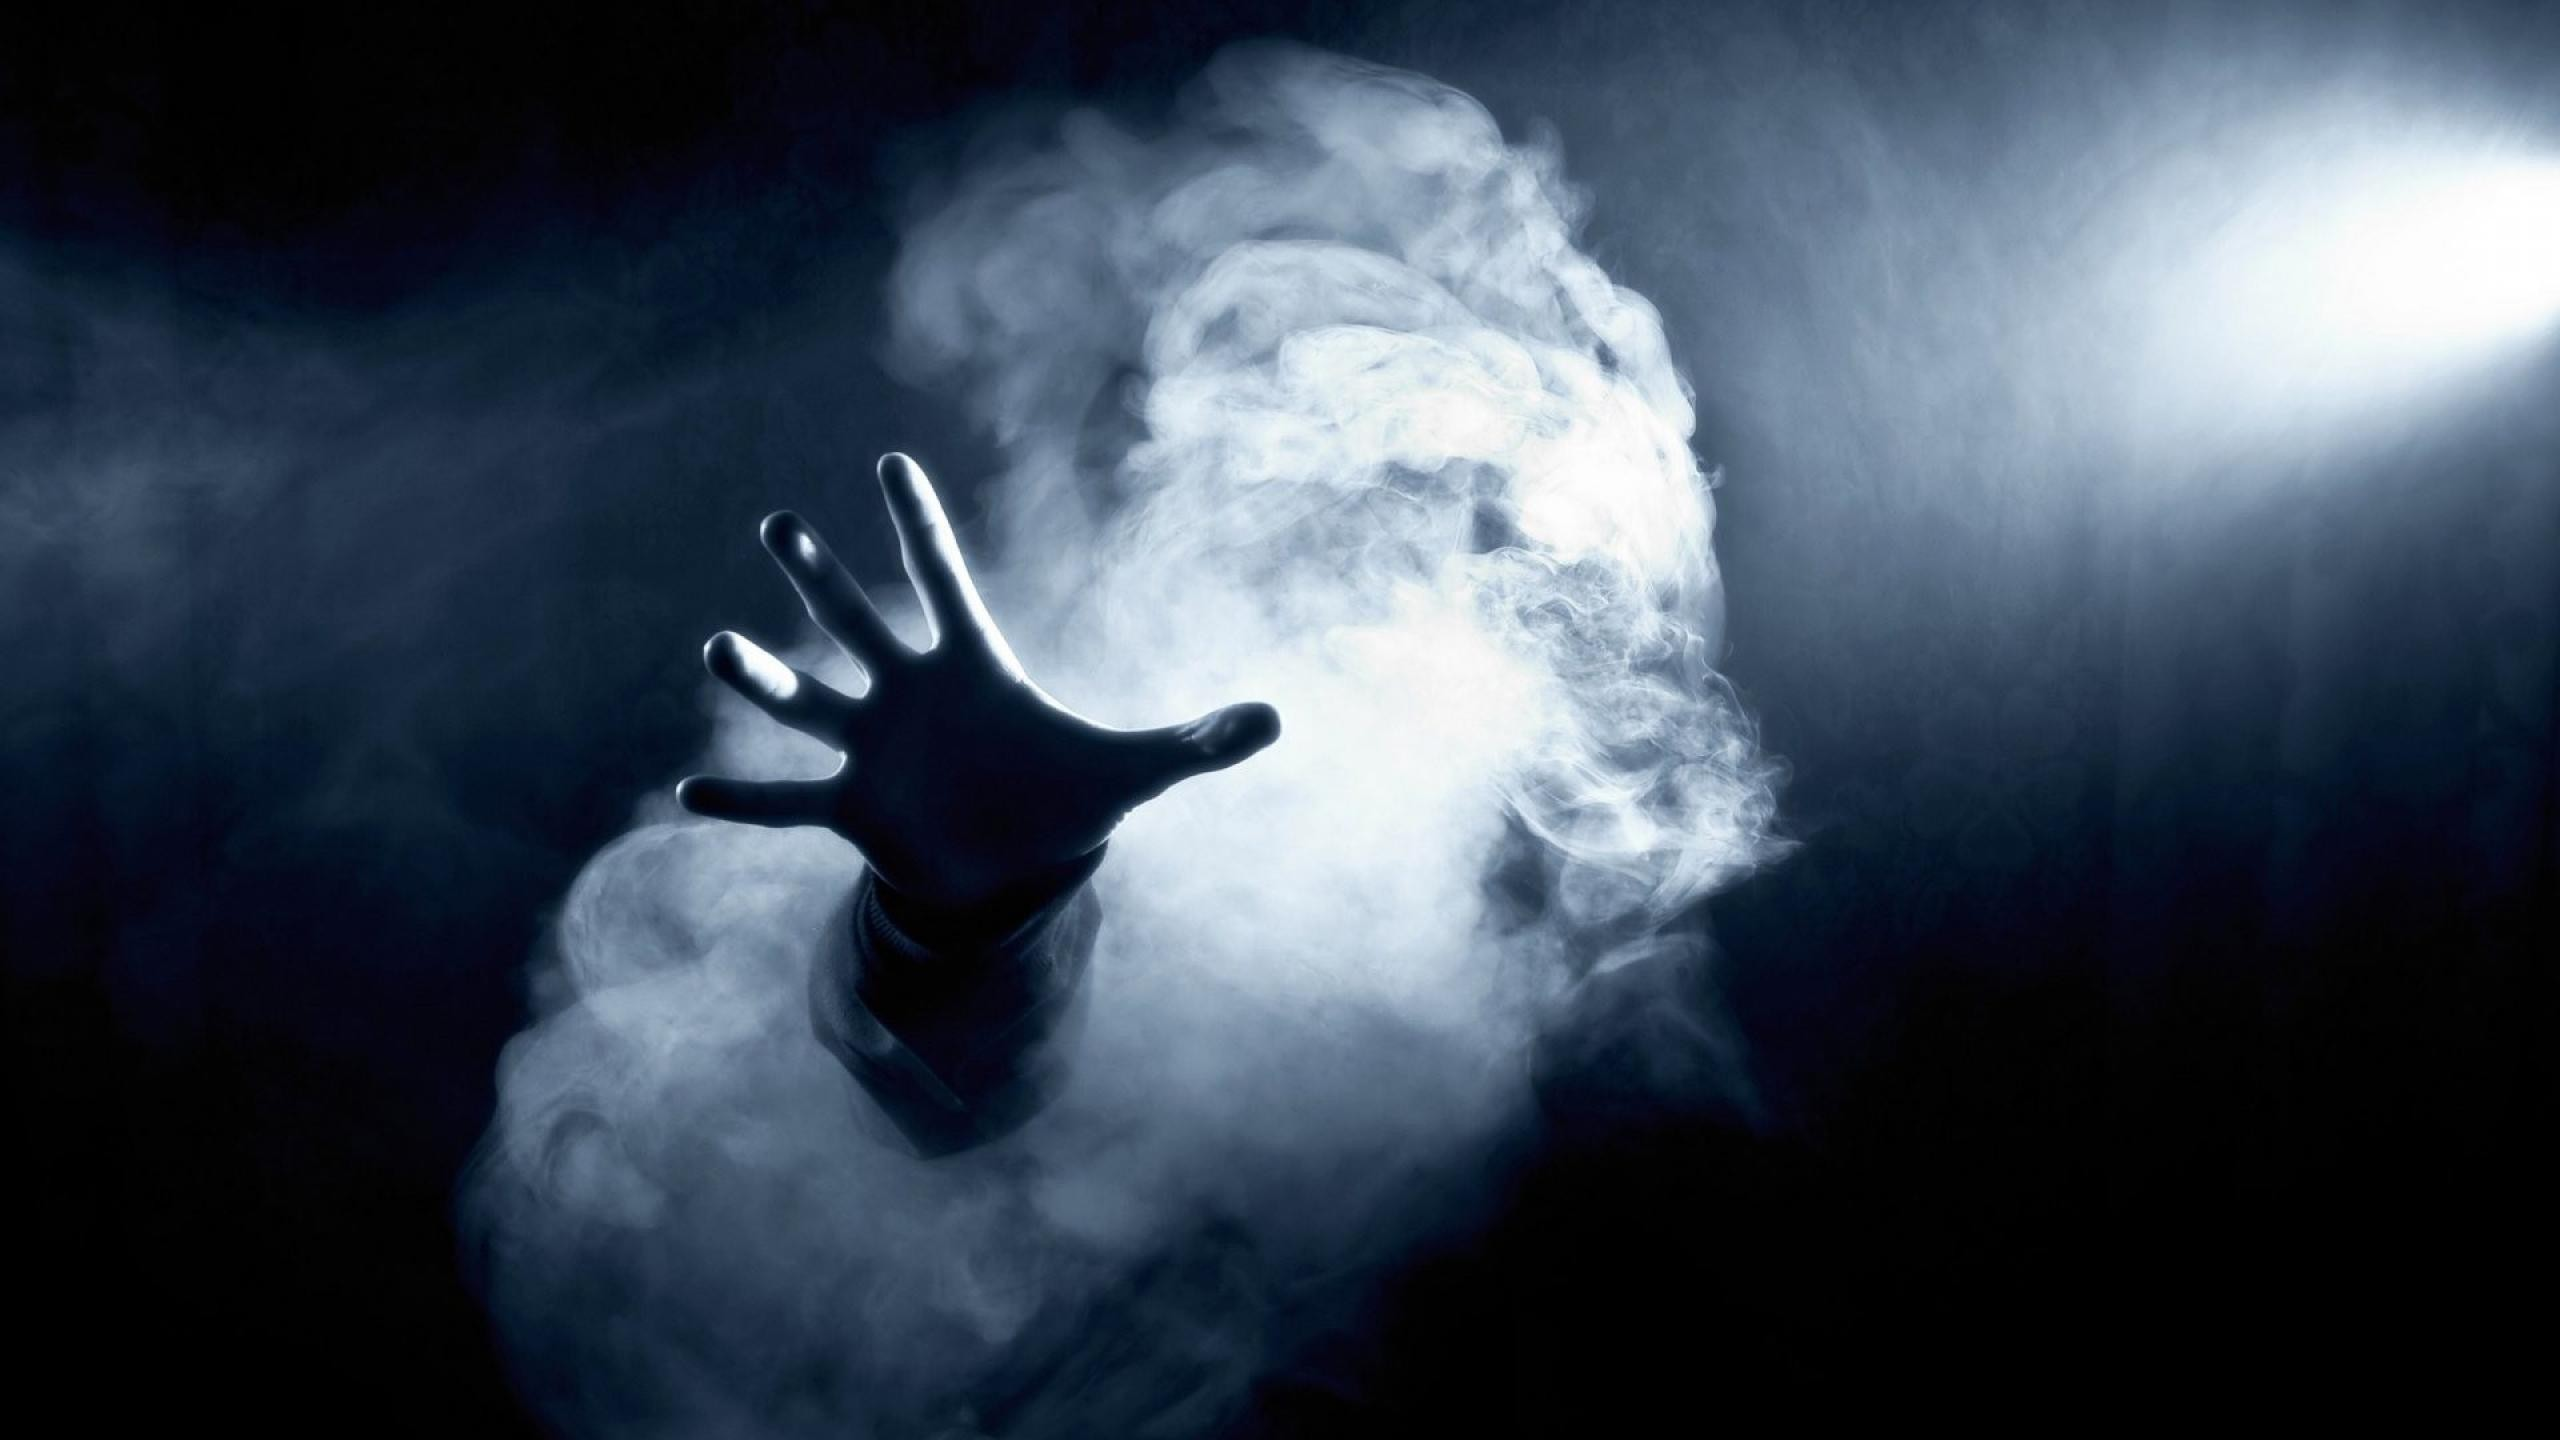 ghost_hand_2560_1440